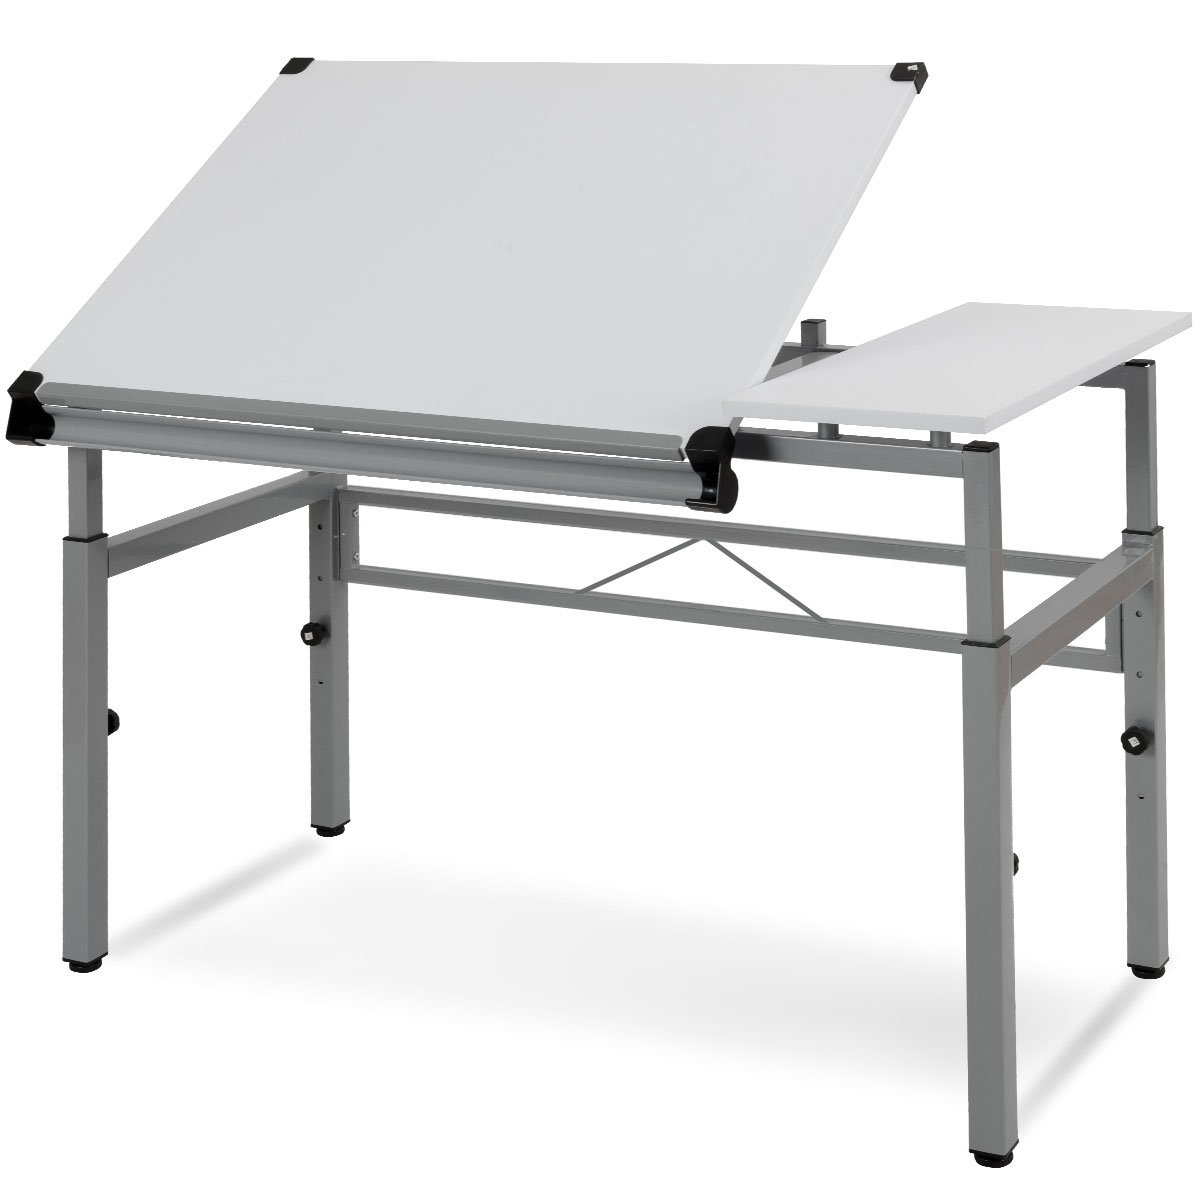 Tangkula Adjustable Drafting Table Art & Craft Drawing Desk Folding with Side Shelf White